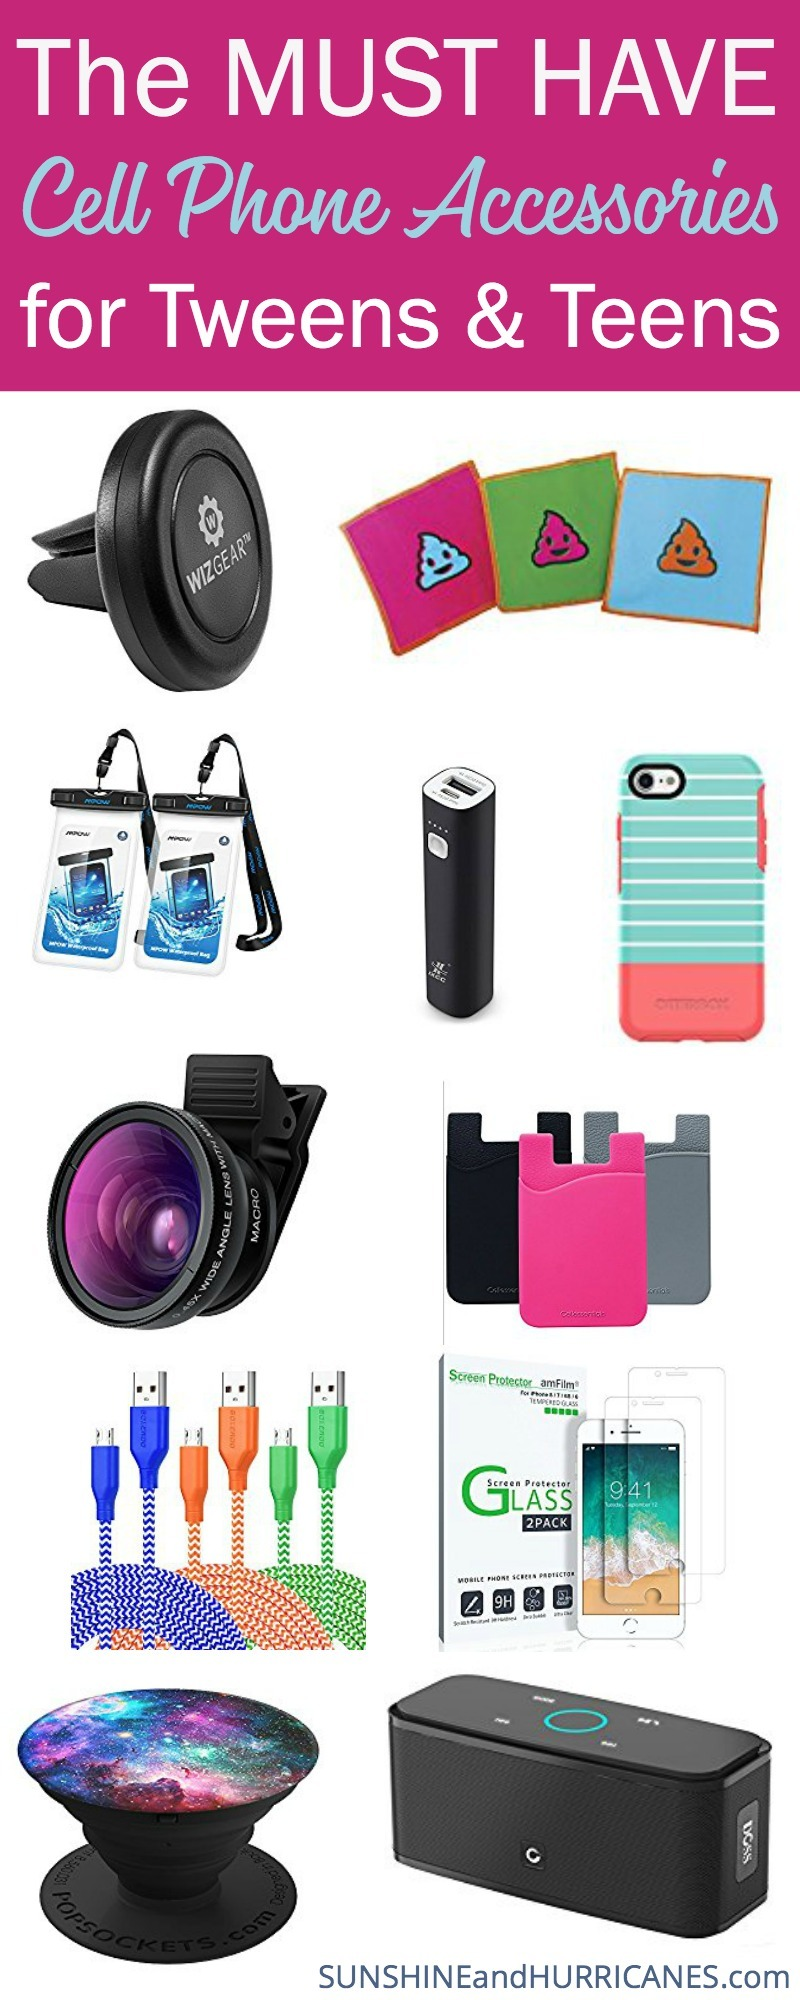 Here are all the trendiest cell phone accessories for teens and tweens to trick out their tech. SunshineandHurricanes.com